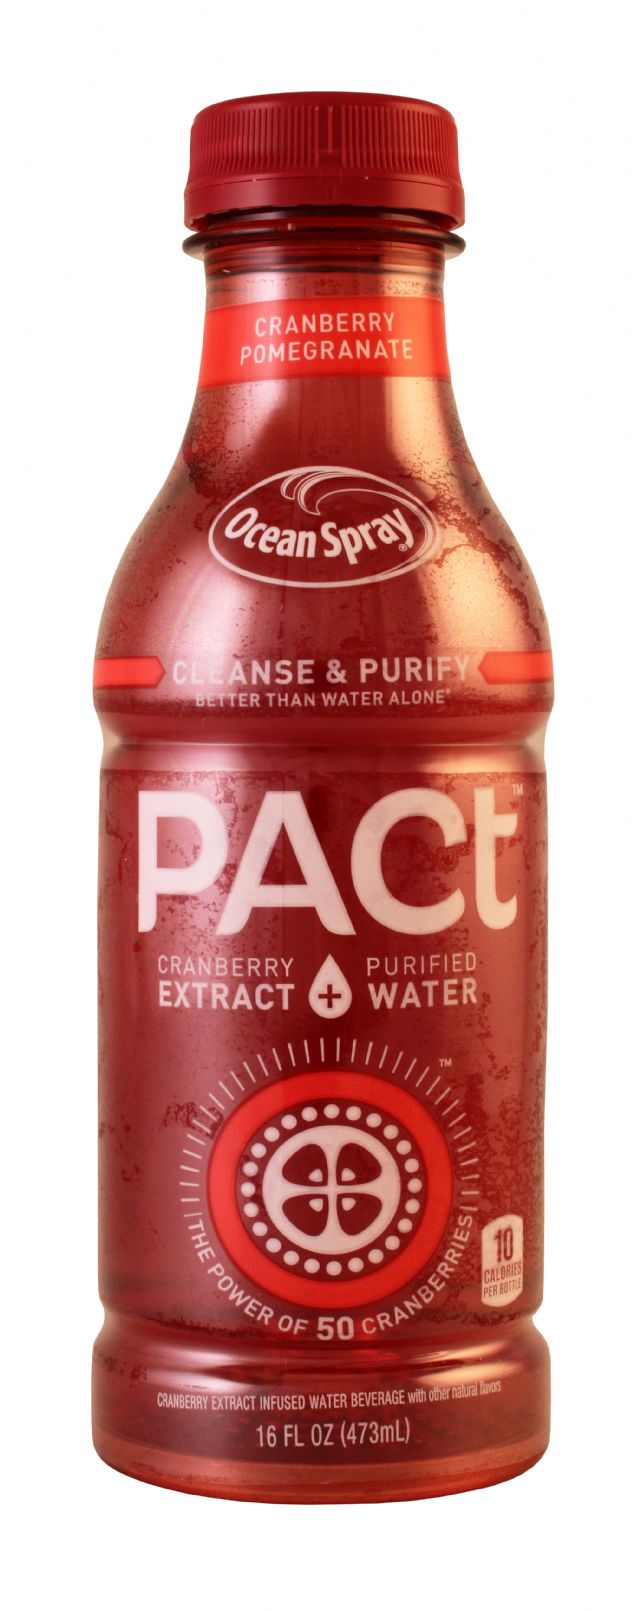 Ocean Spray PACt: OceanSpray PactPom Front